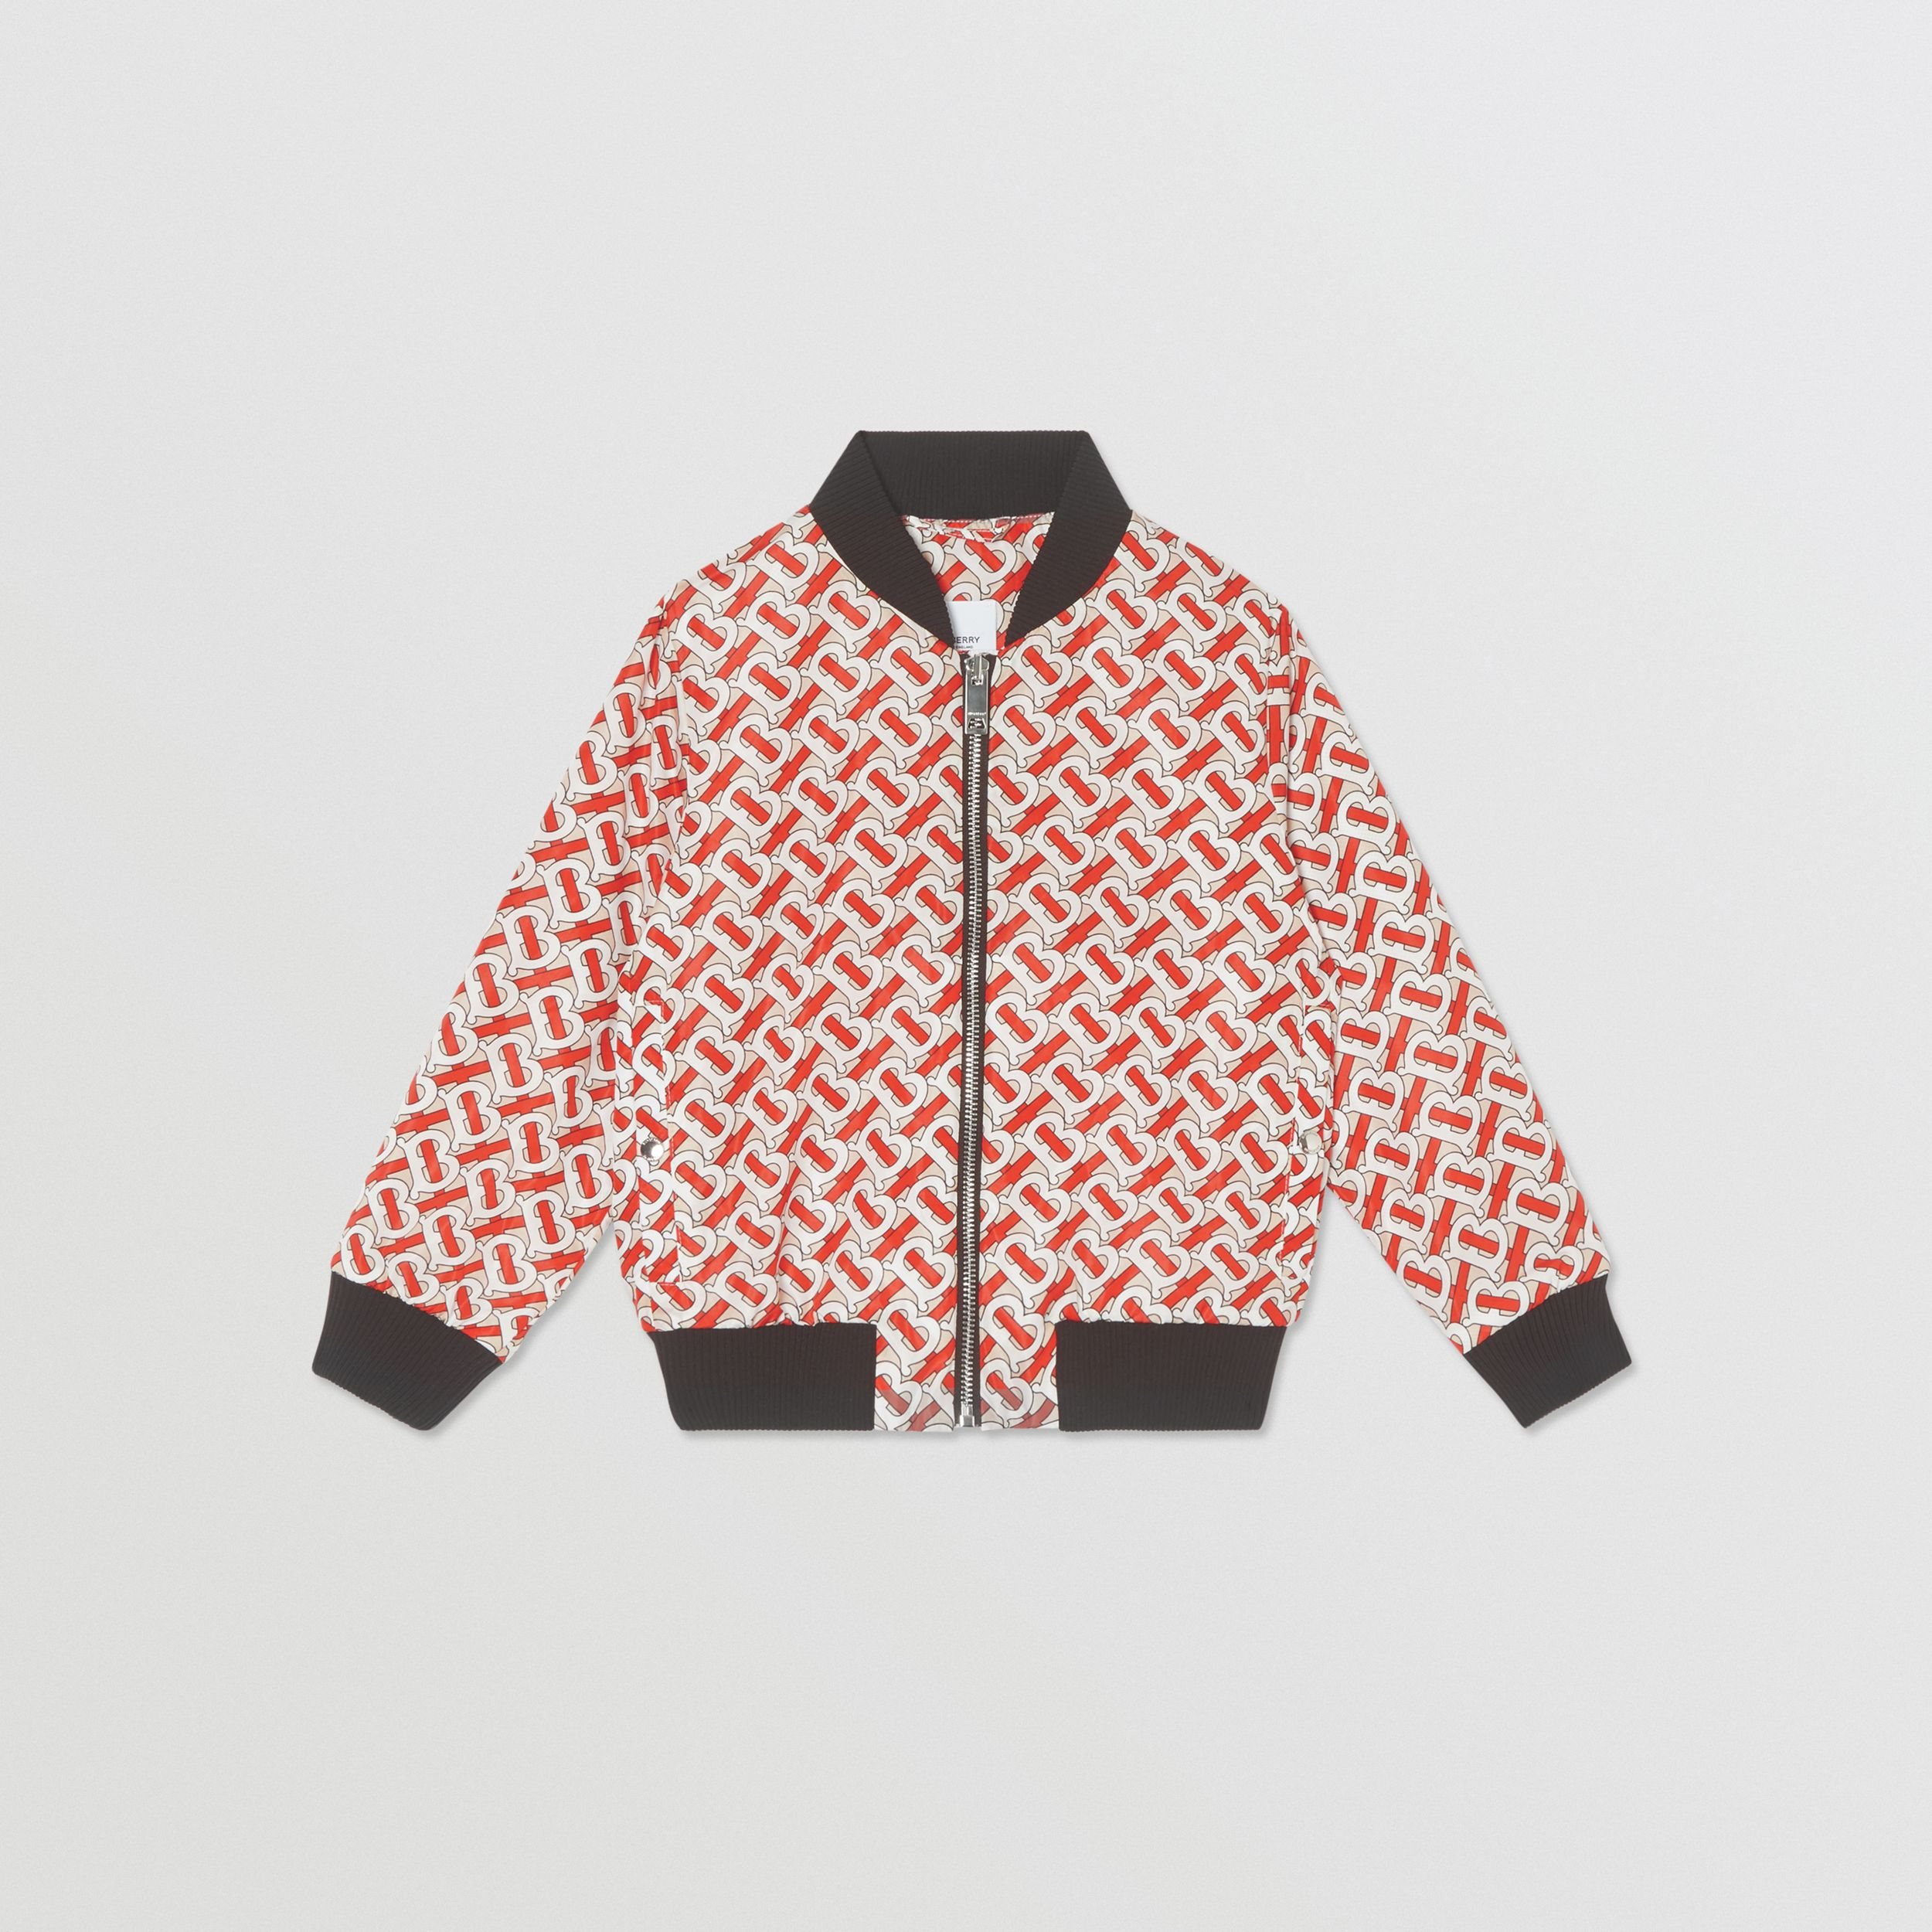 Monogram Print Nylon Bomber Jacket in Vermilion Red | Burberry Hong Kong S.A.R. - 1